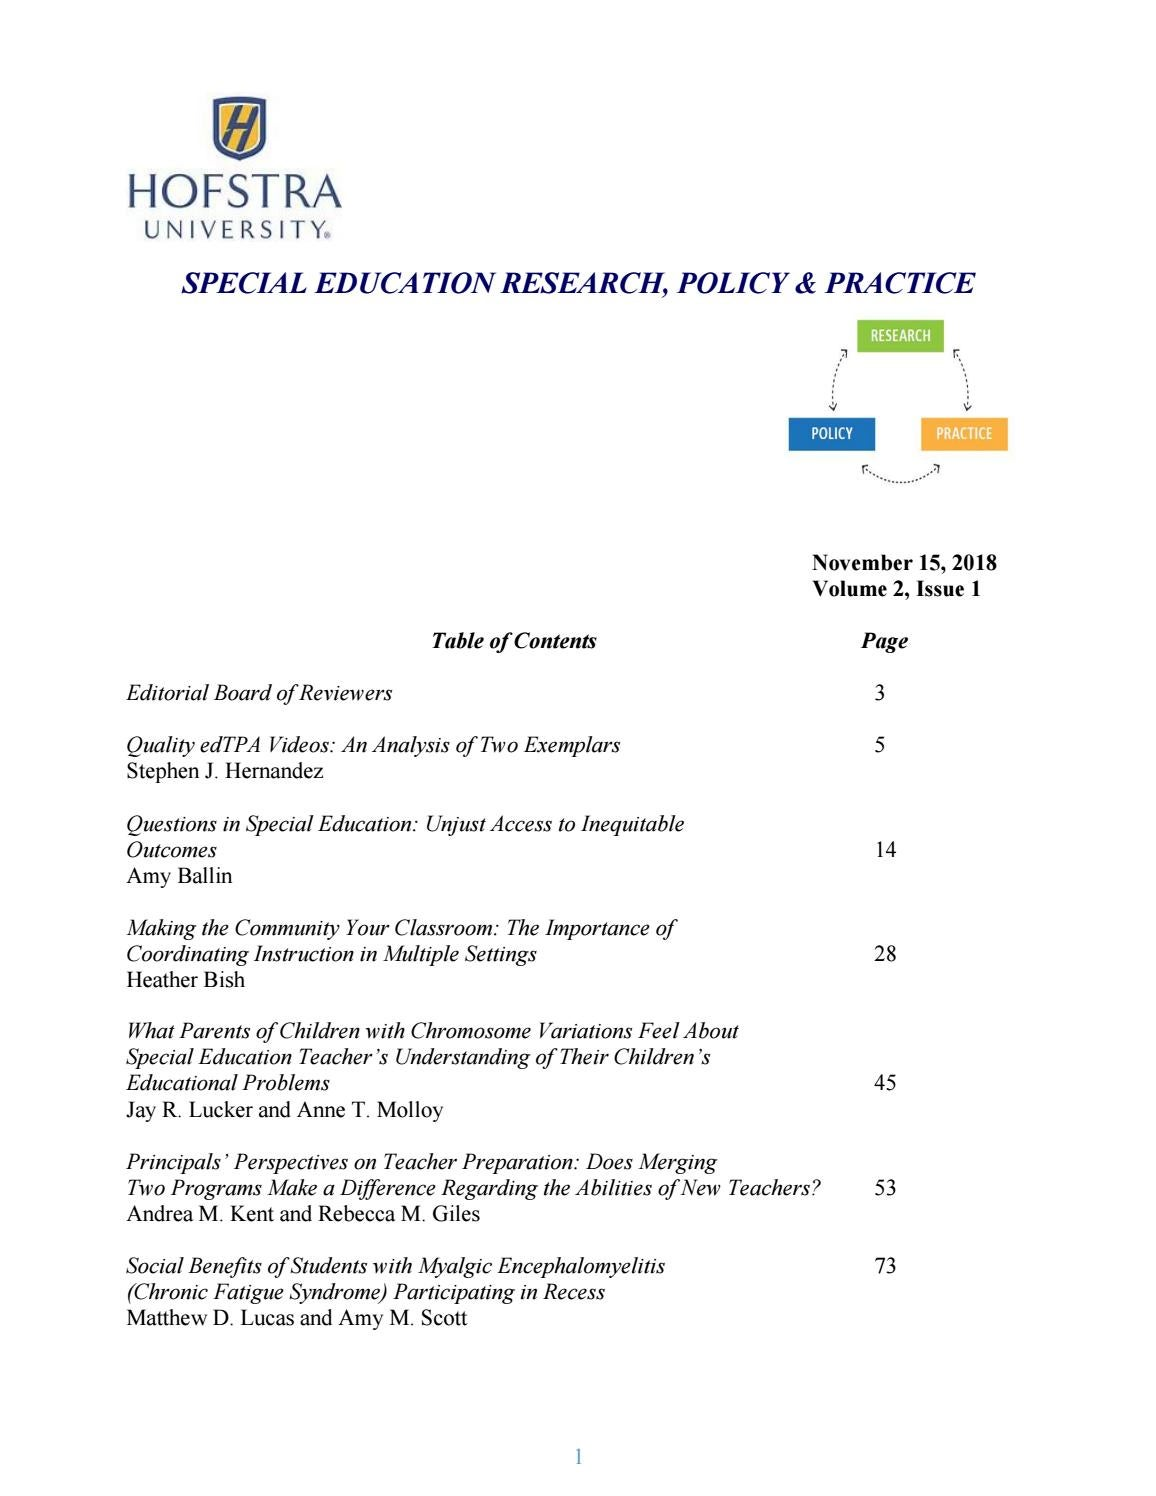 Special Education Research, Policy & Practice - 2018 by